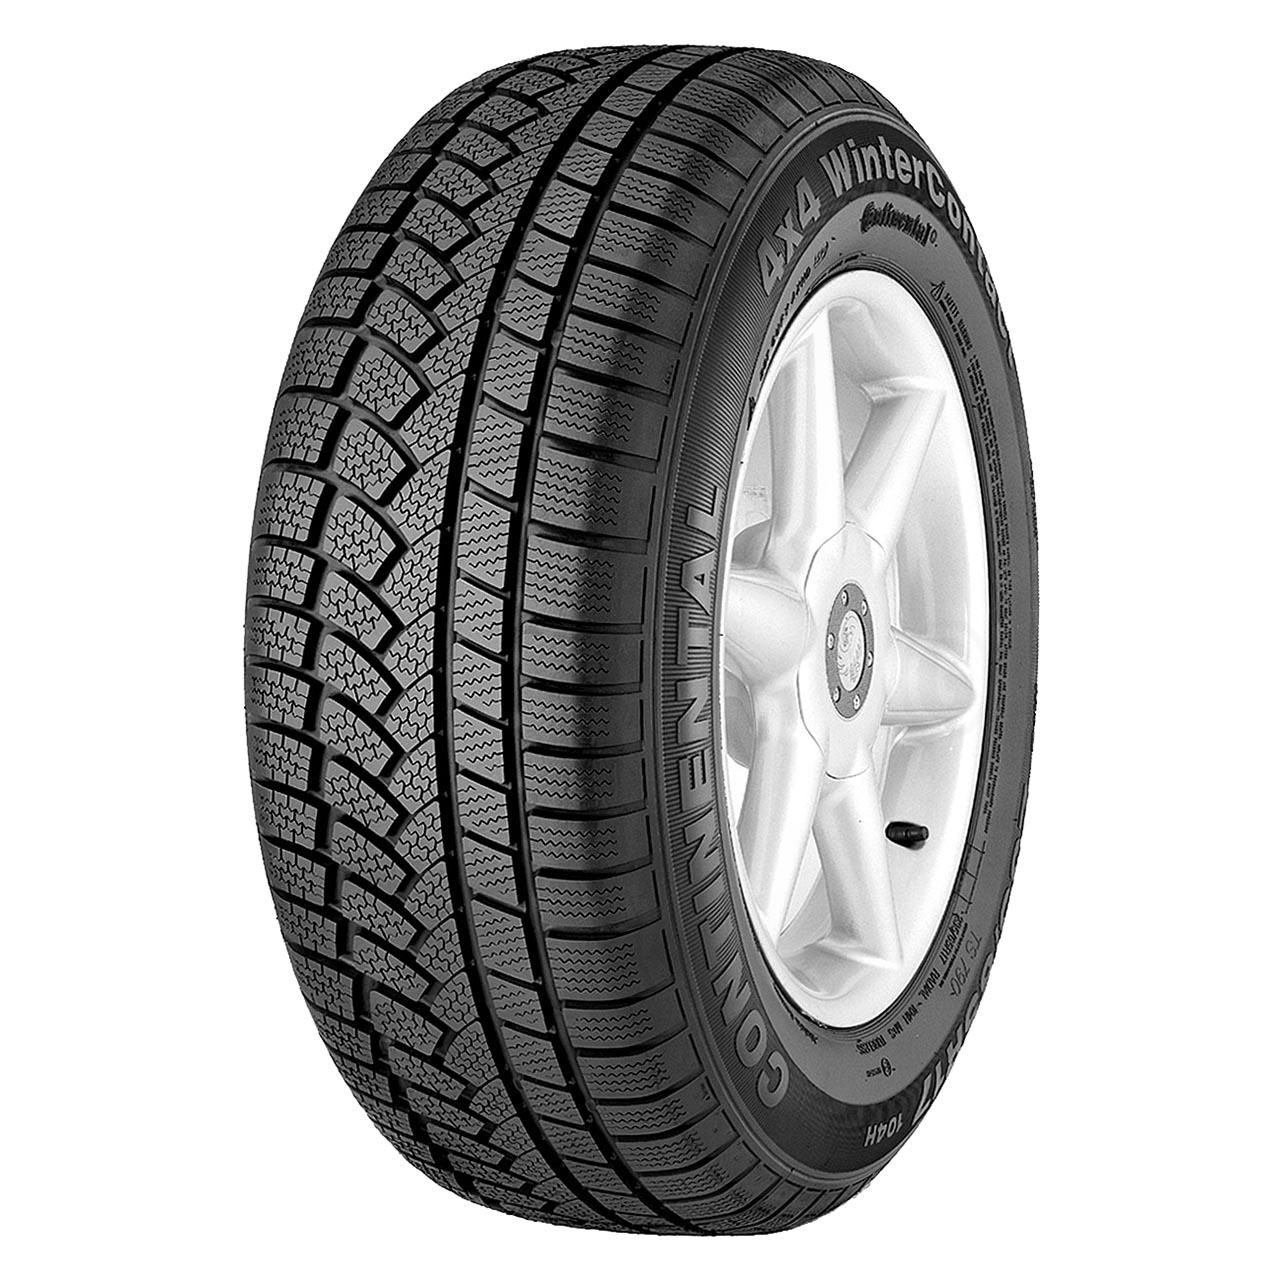 Continental 4X4 WINTERCONTACT 215/60R17 96H FR *